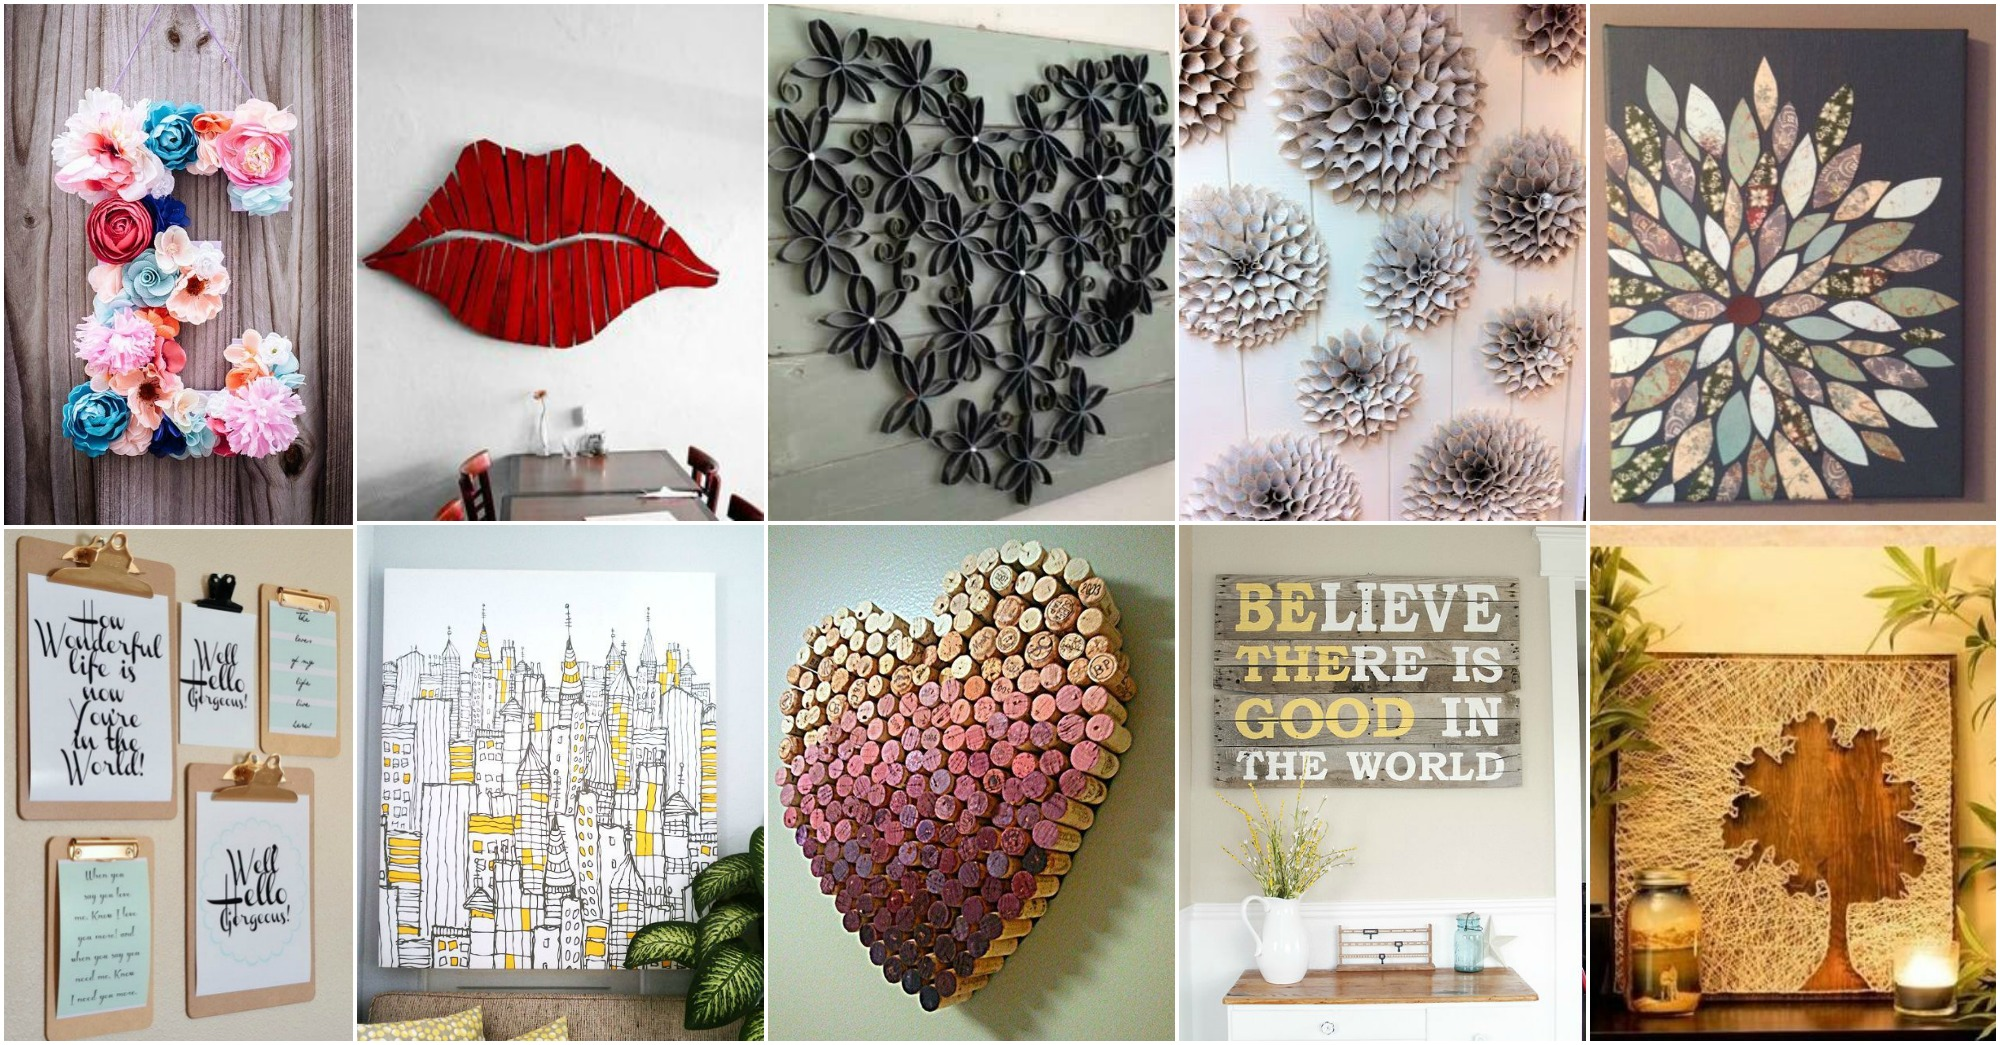 20 DIY Innovative Wall Art Decor Ideas That Will Leave You Speechless